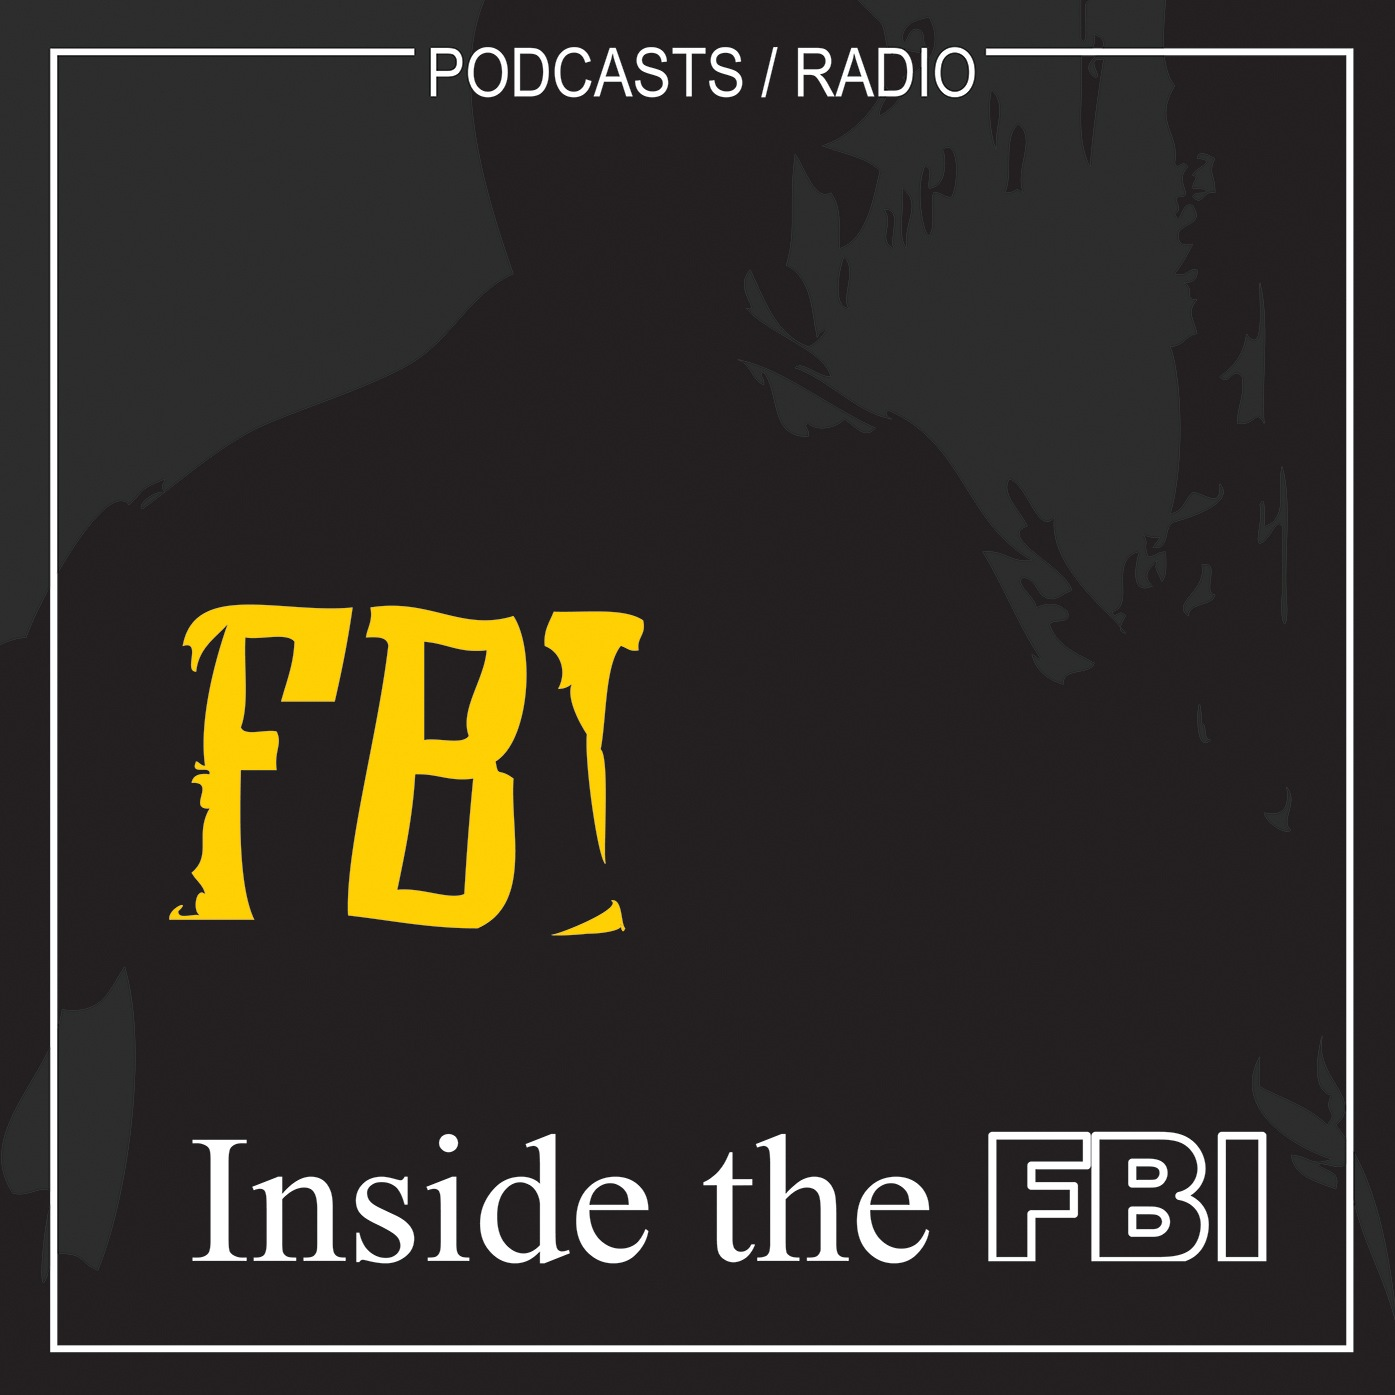 Inside the FBI: Podcast logo